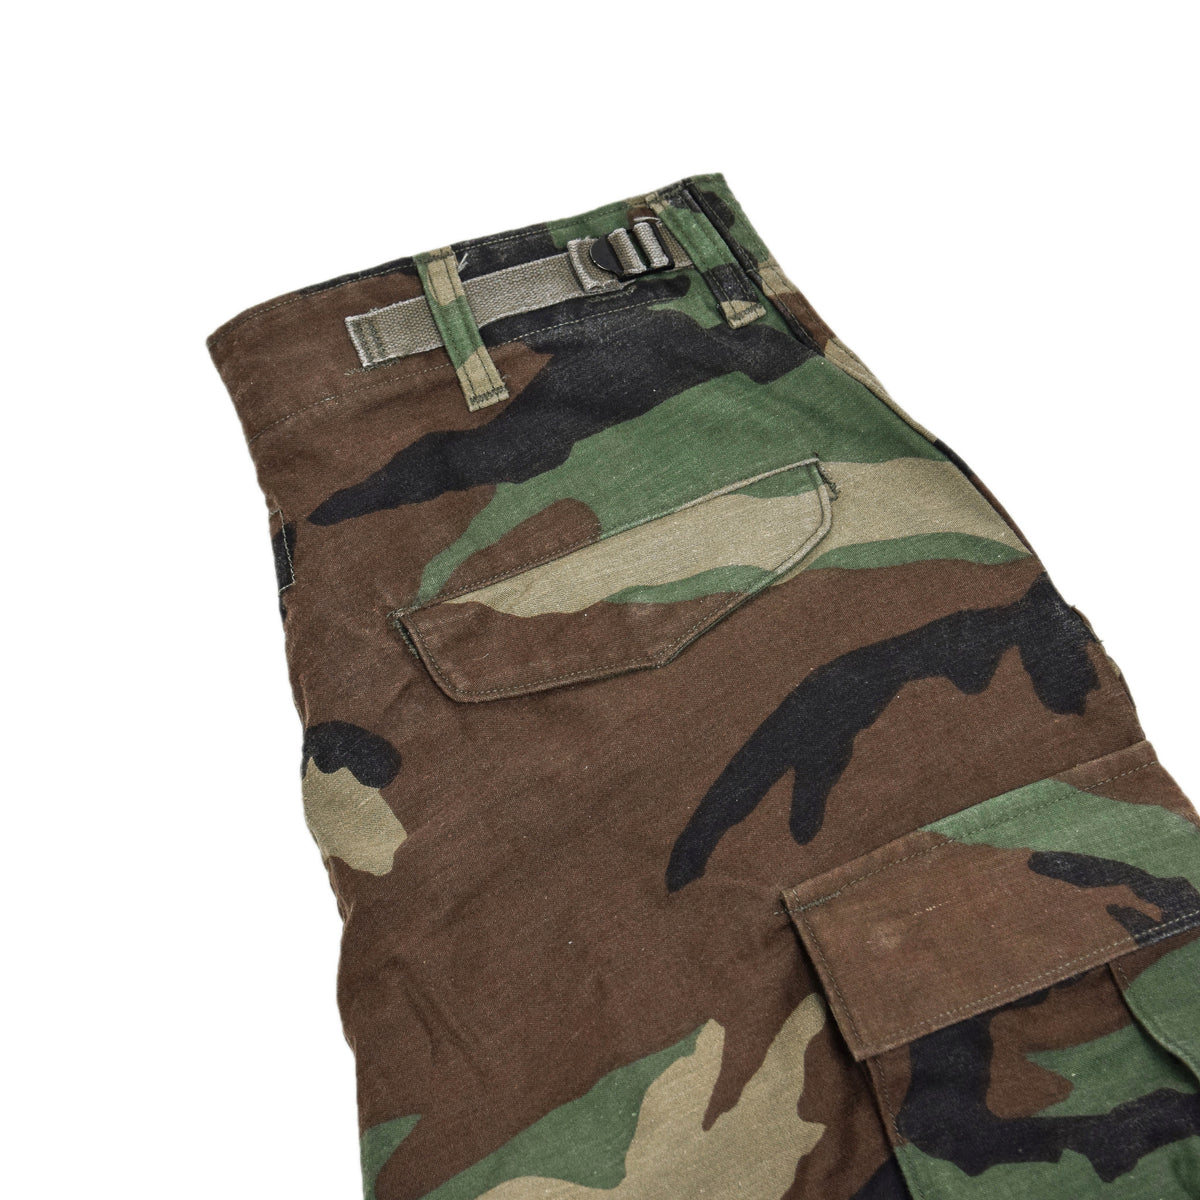 Vintage 80s US Army Camo Cold Weather Cargo Combat Field Trousers S Reg back pocket